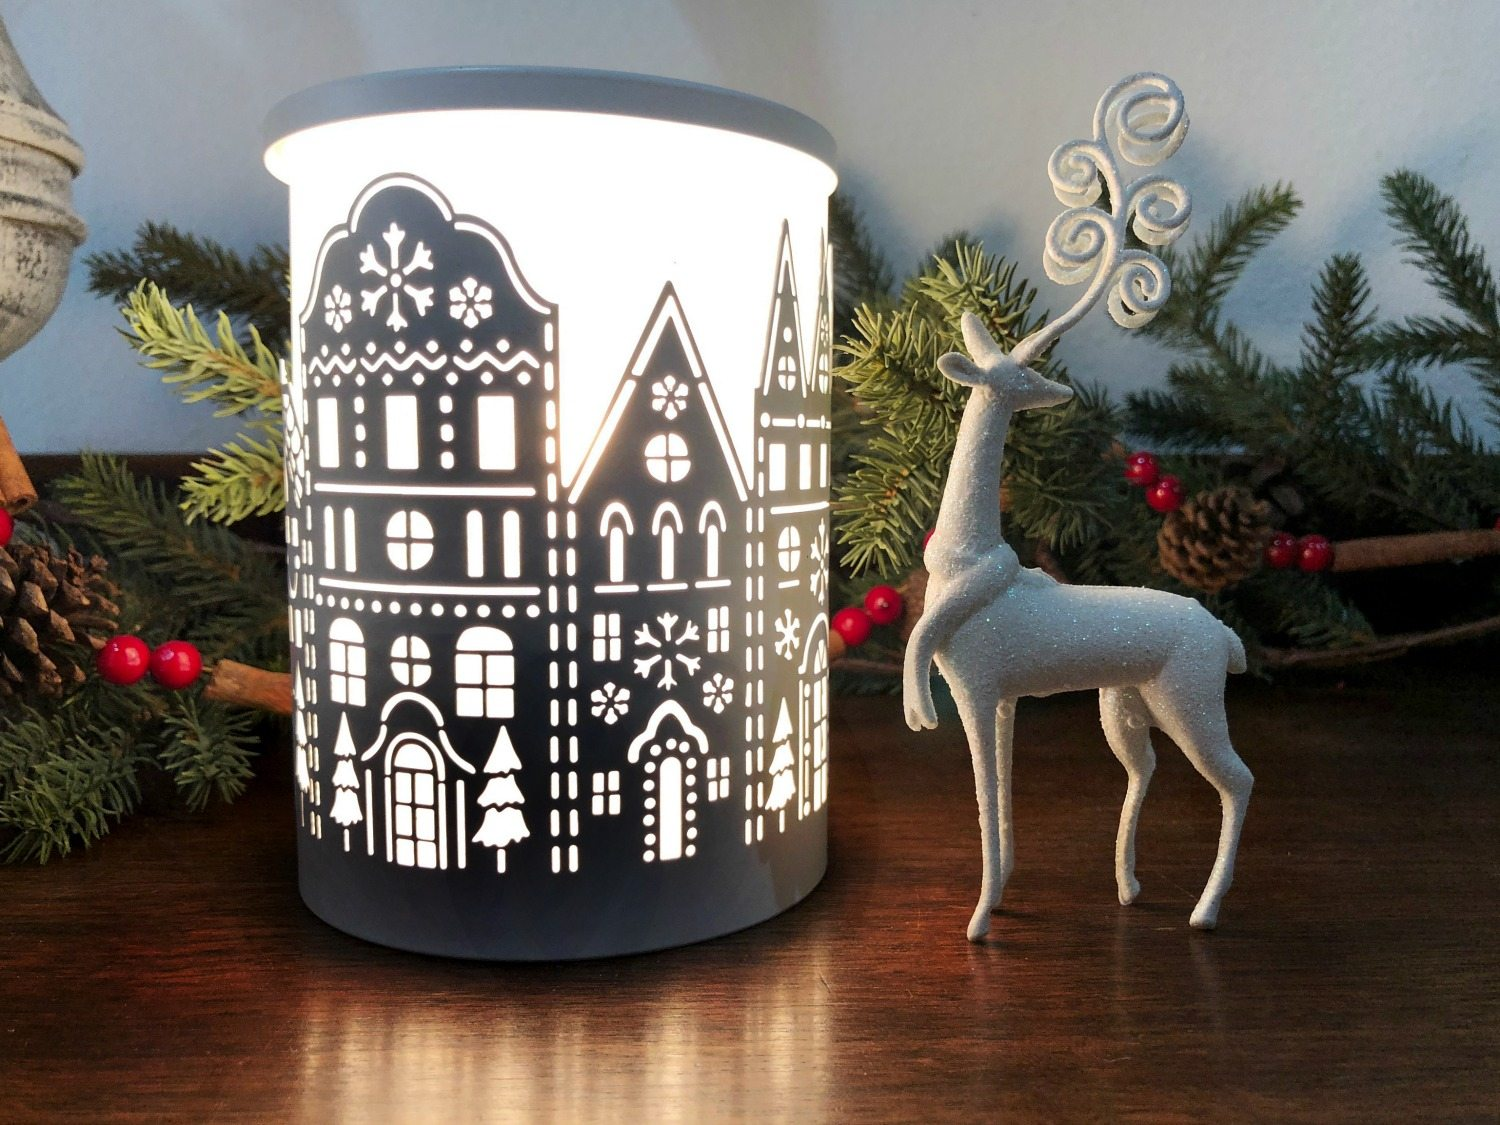 Candle warmer perfect for gift giving